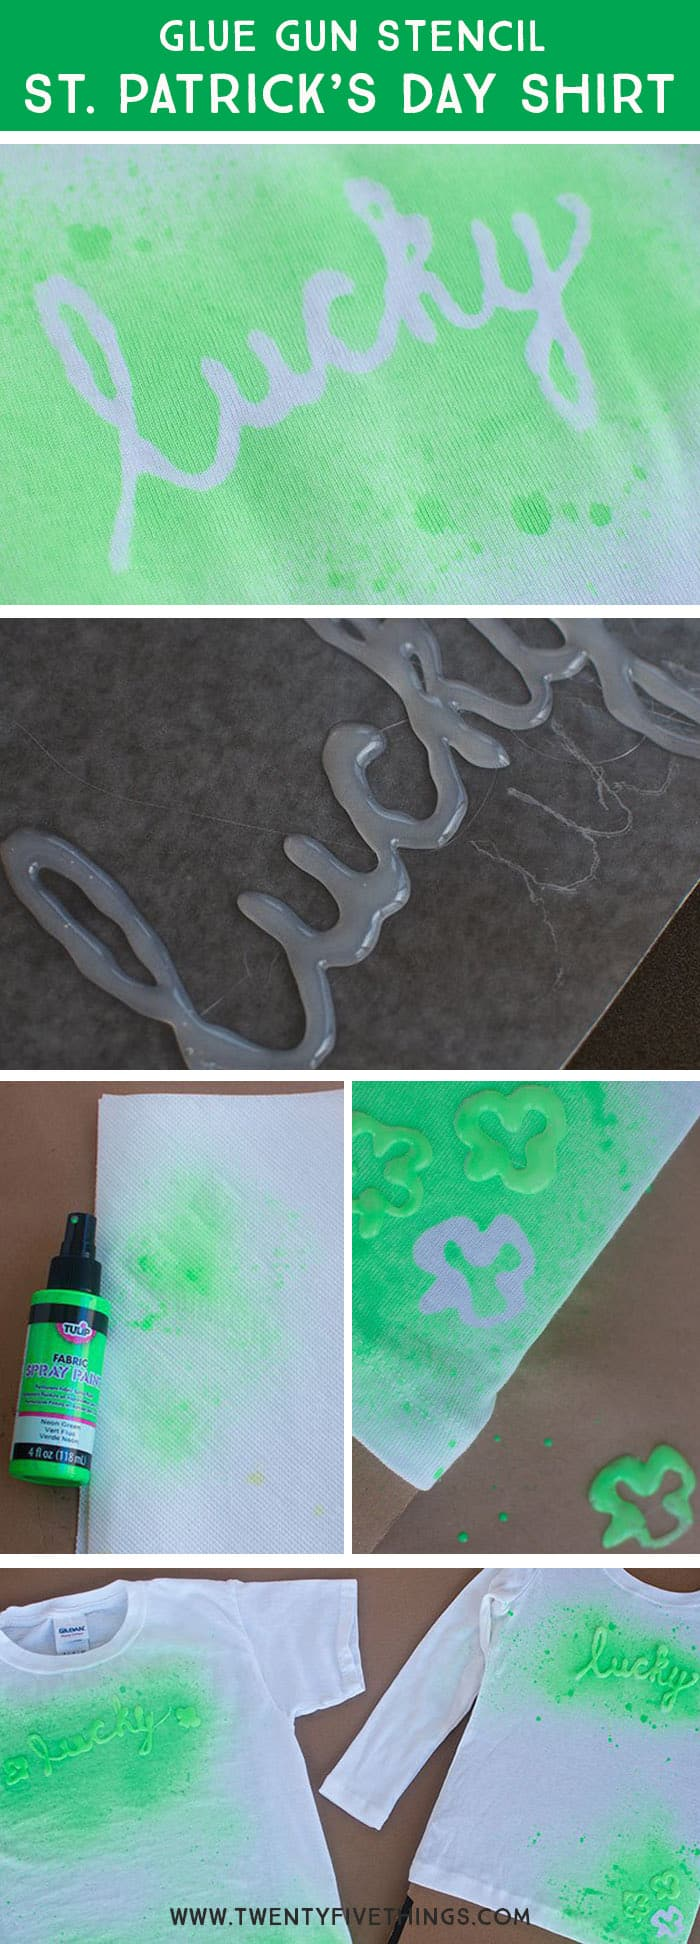 Design your own St. Patrick's Day shirt using a glue gun and fabric paint. St. Patrick's day craft for tweens and teens.